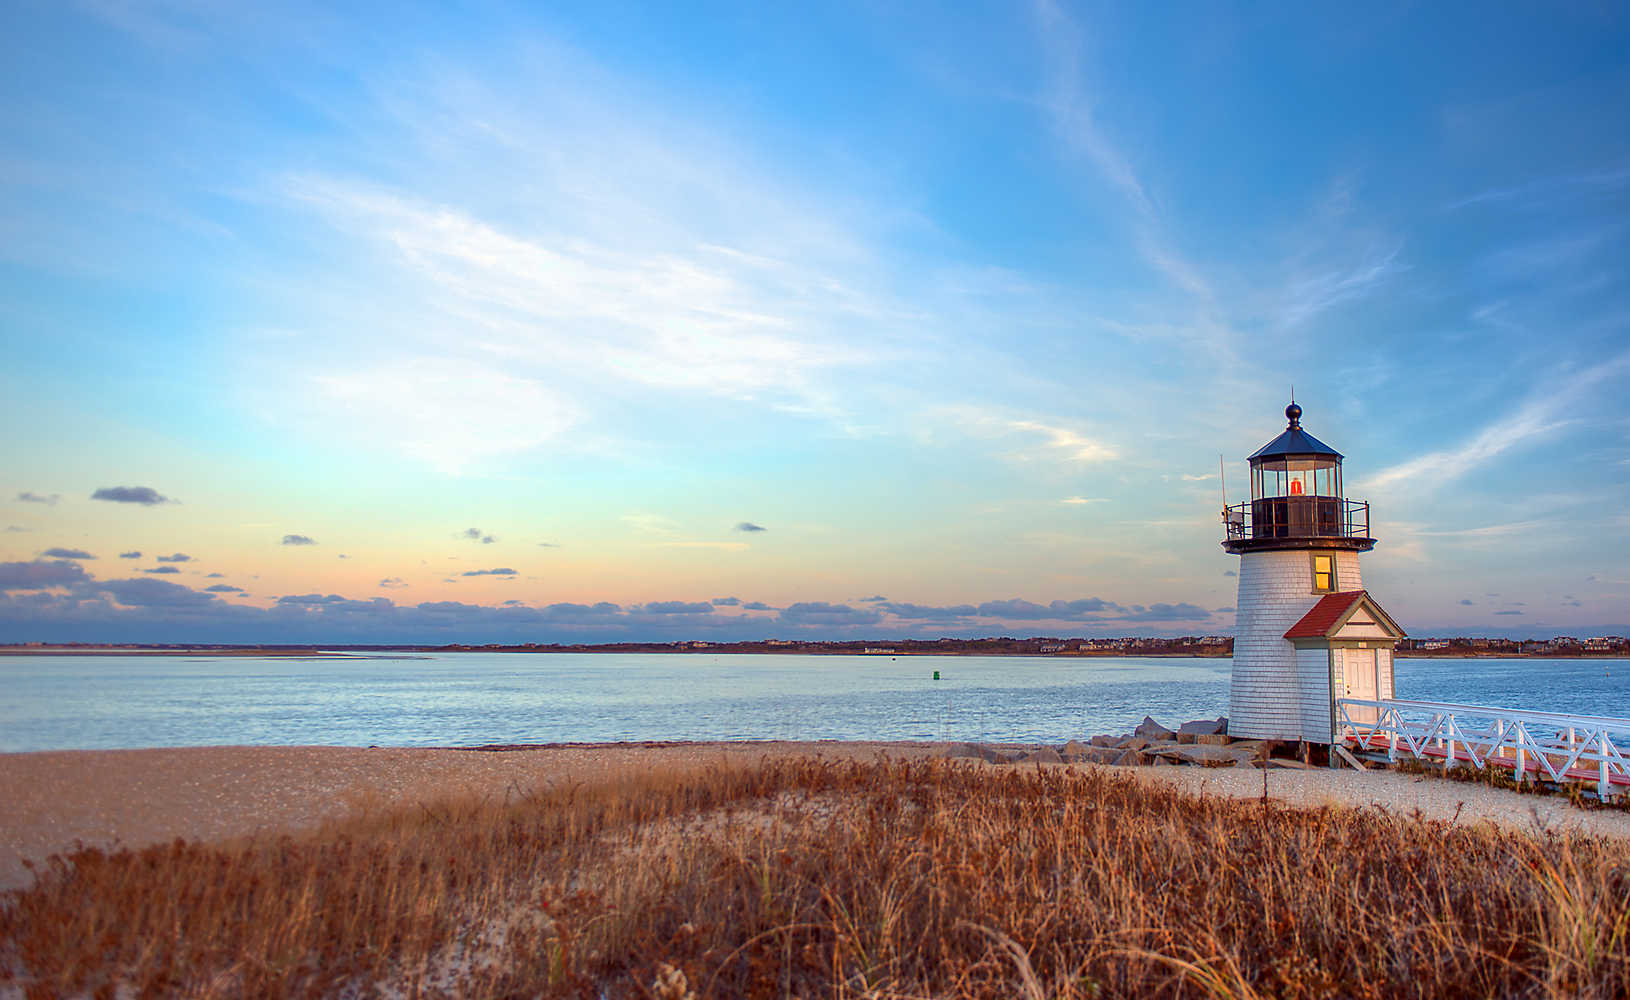 Blue skies and the Brant Point Lighthouse in Nantucket, Cape Cod Massachusetts